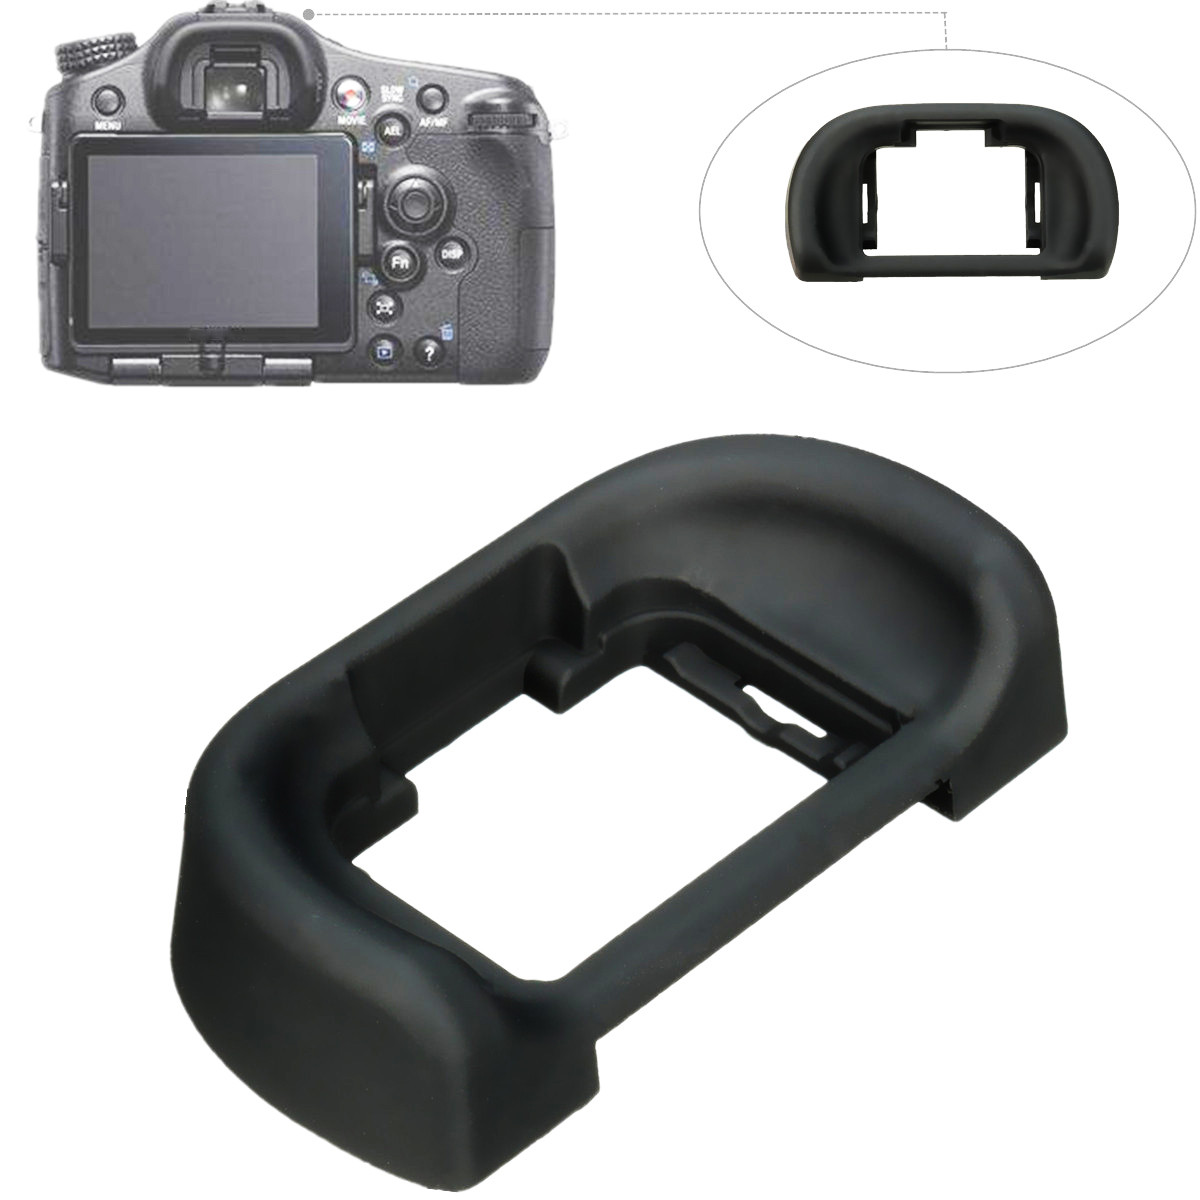 Eye Cup Viewfinder Eyepiece FDA-EP11 For Sony Alpha A77 A58 A65 SLT-A7 A7R A57 10523